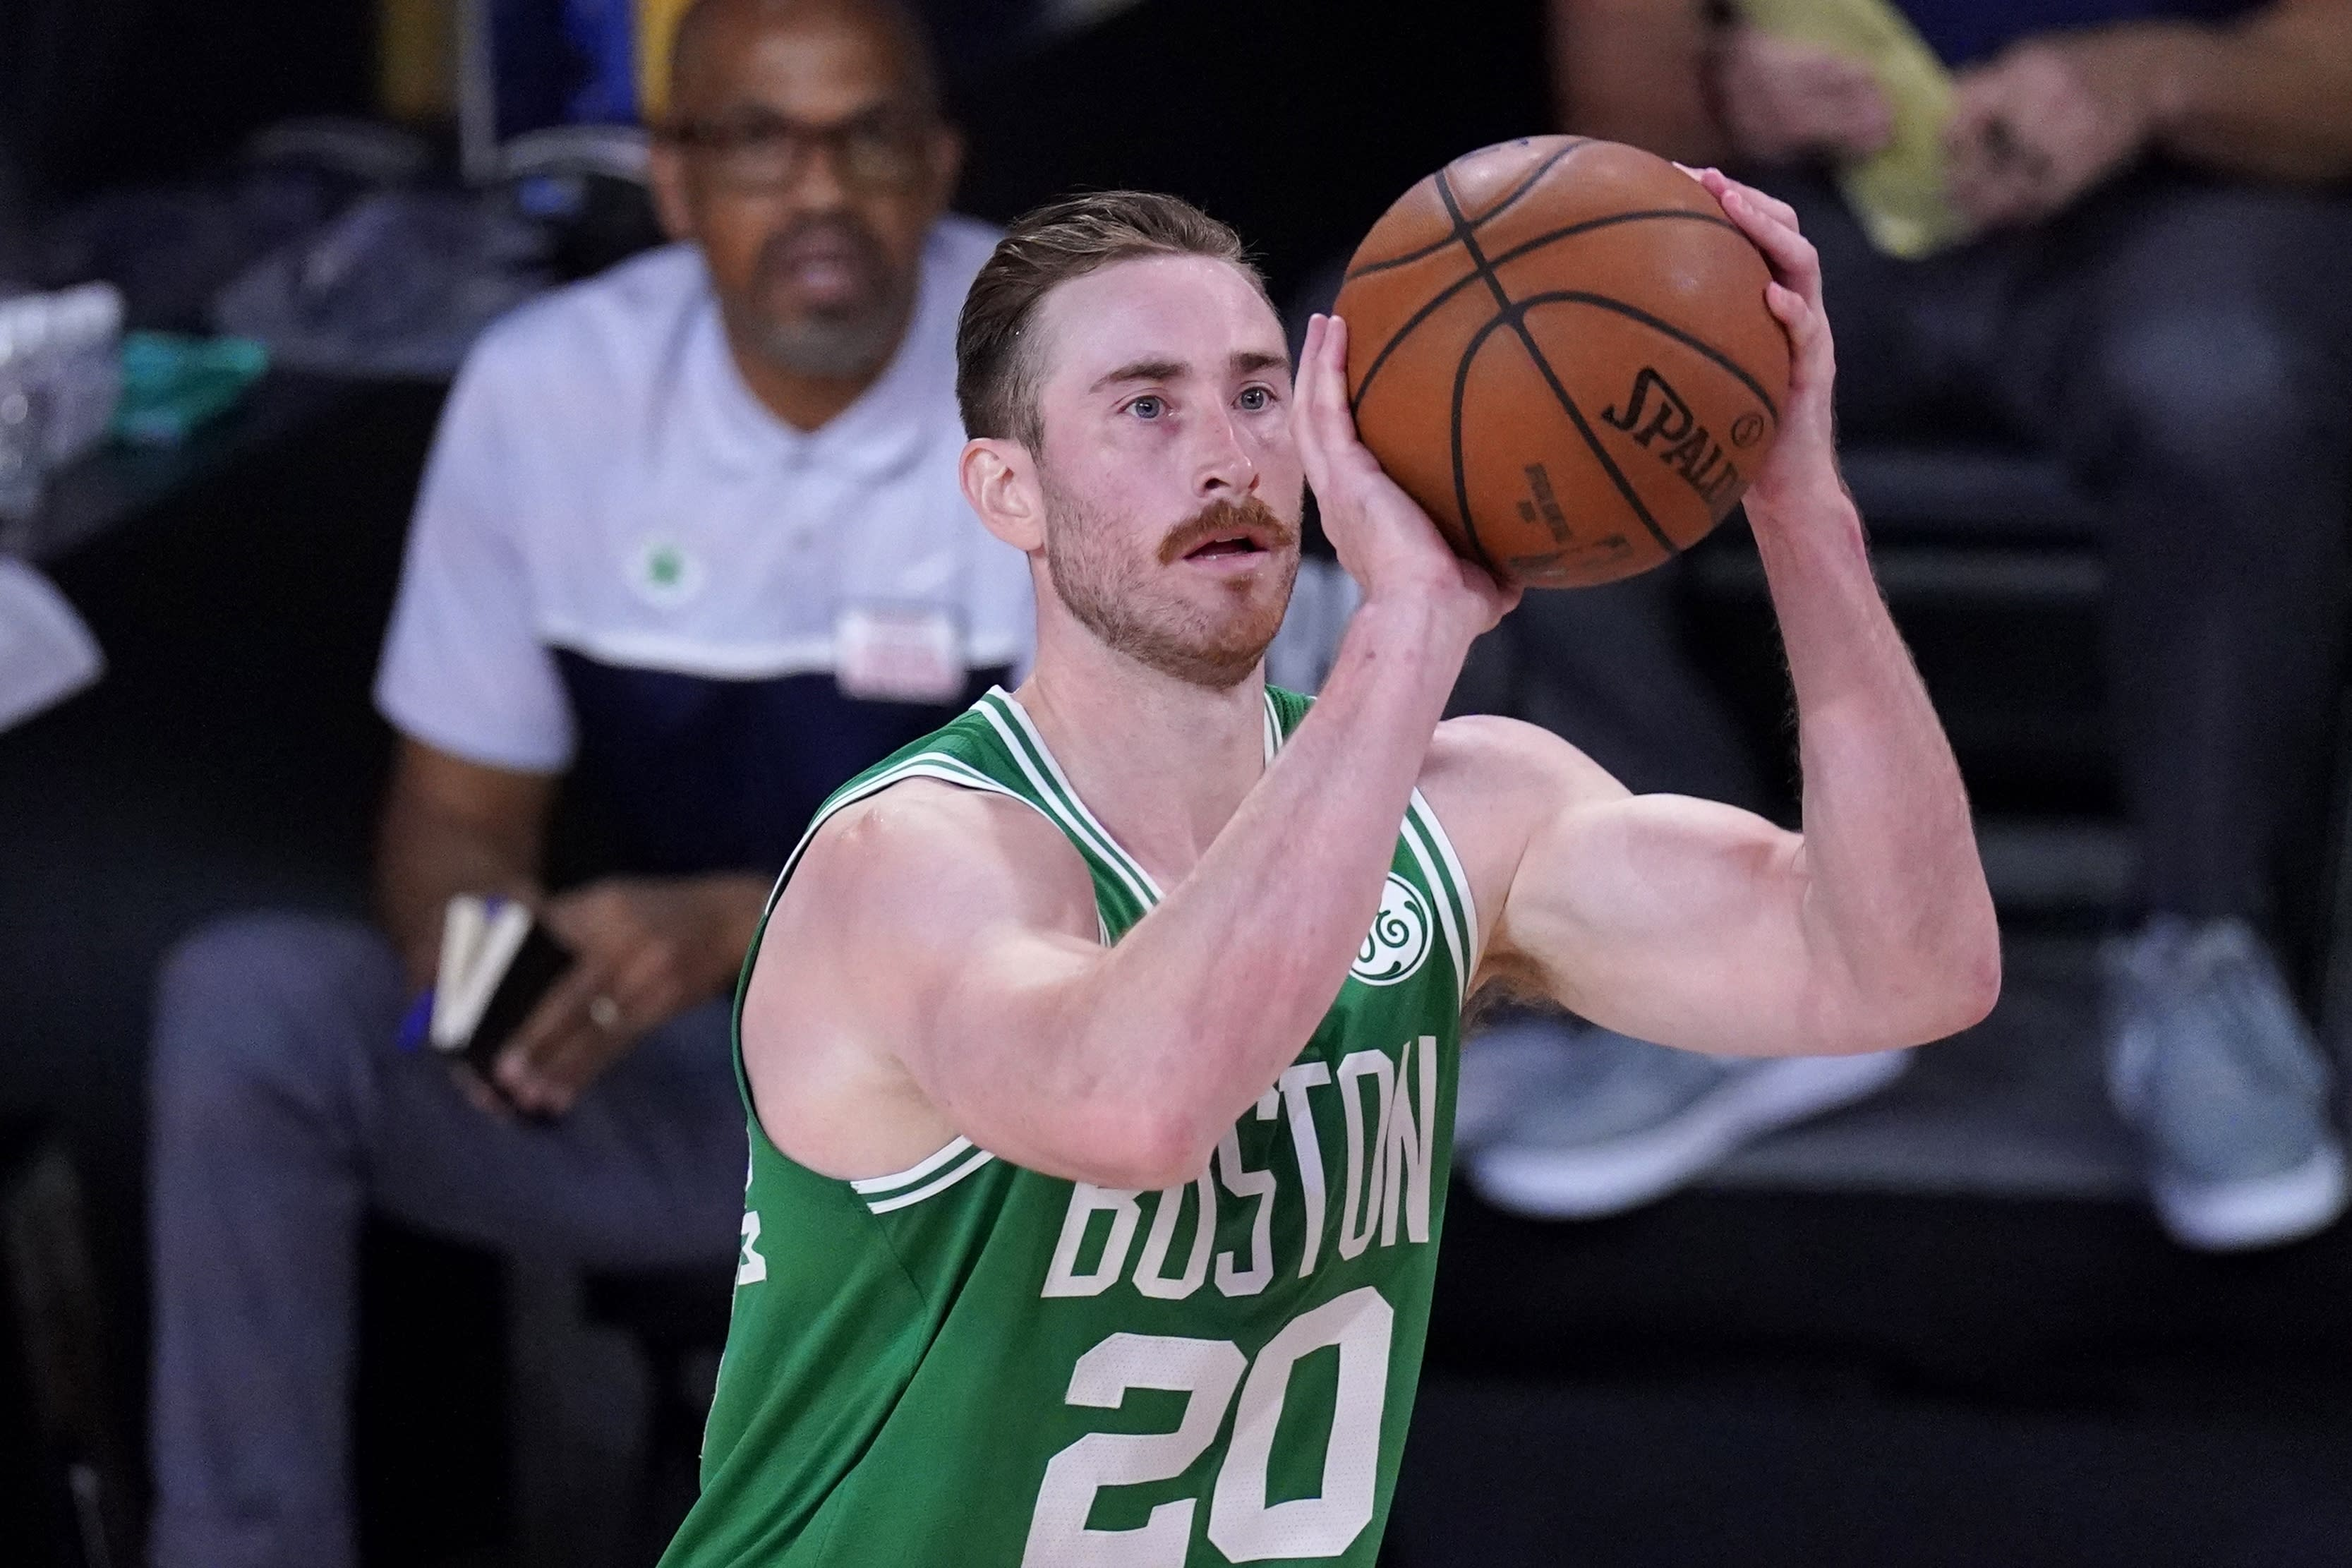 Boston Celtics' Gordon Hayward (20) attempts a shot during the second half of an NBA conference final playoff basketball game against the Miami Heat on Saturday, Sept. 19, 2020, in Lake Buena Vista, Fla. (AP Photo/Mark J. Terrill)